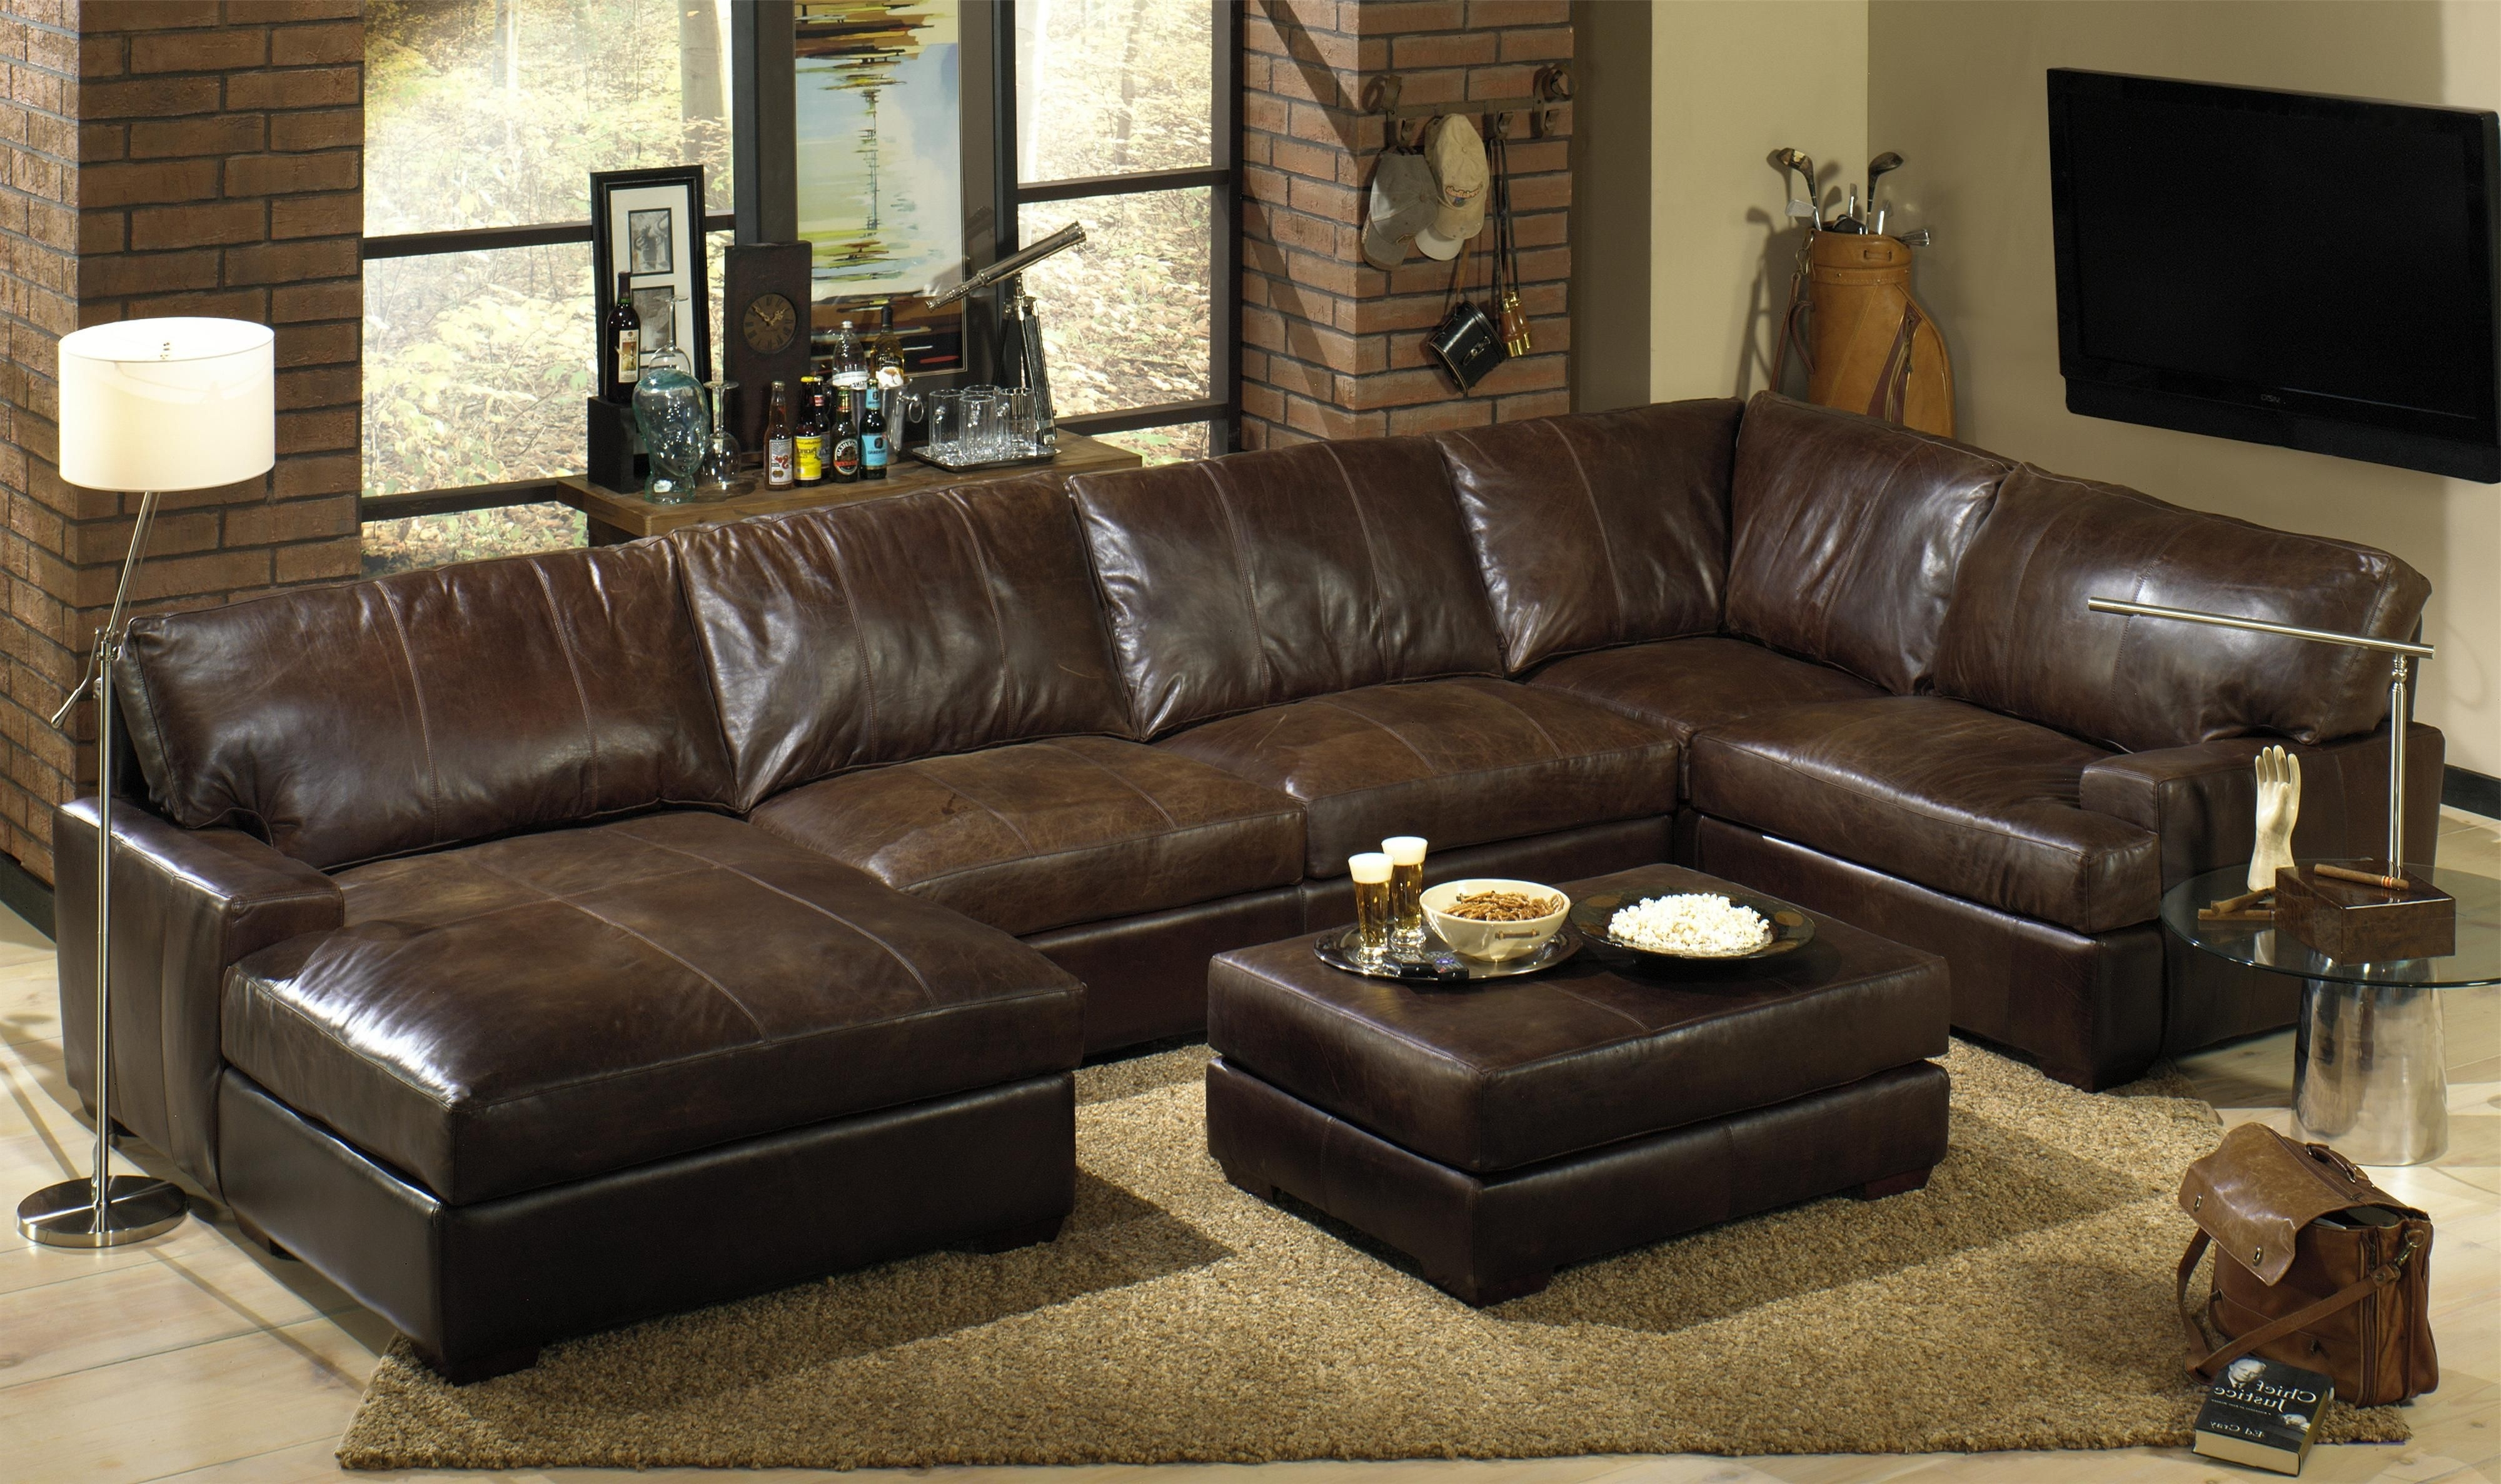 Comfortable Sectional Couches For Versatile Home Furniture Ideas For Fashionable High End Leather Sectional Sofas (View 3 of 20)